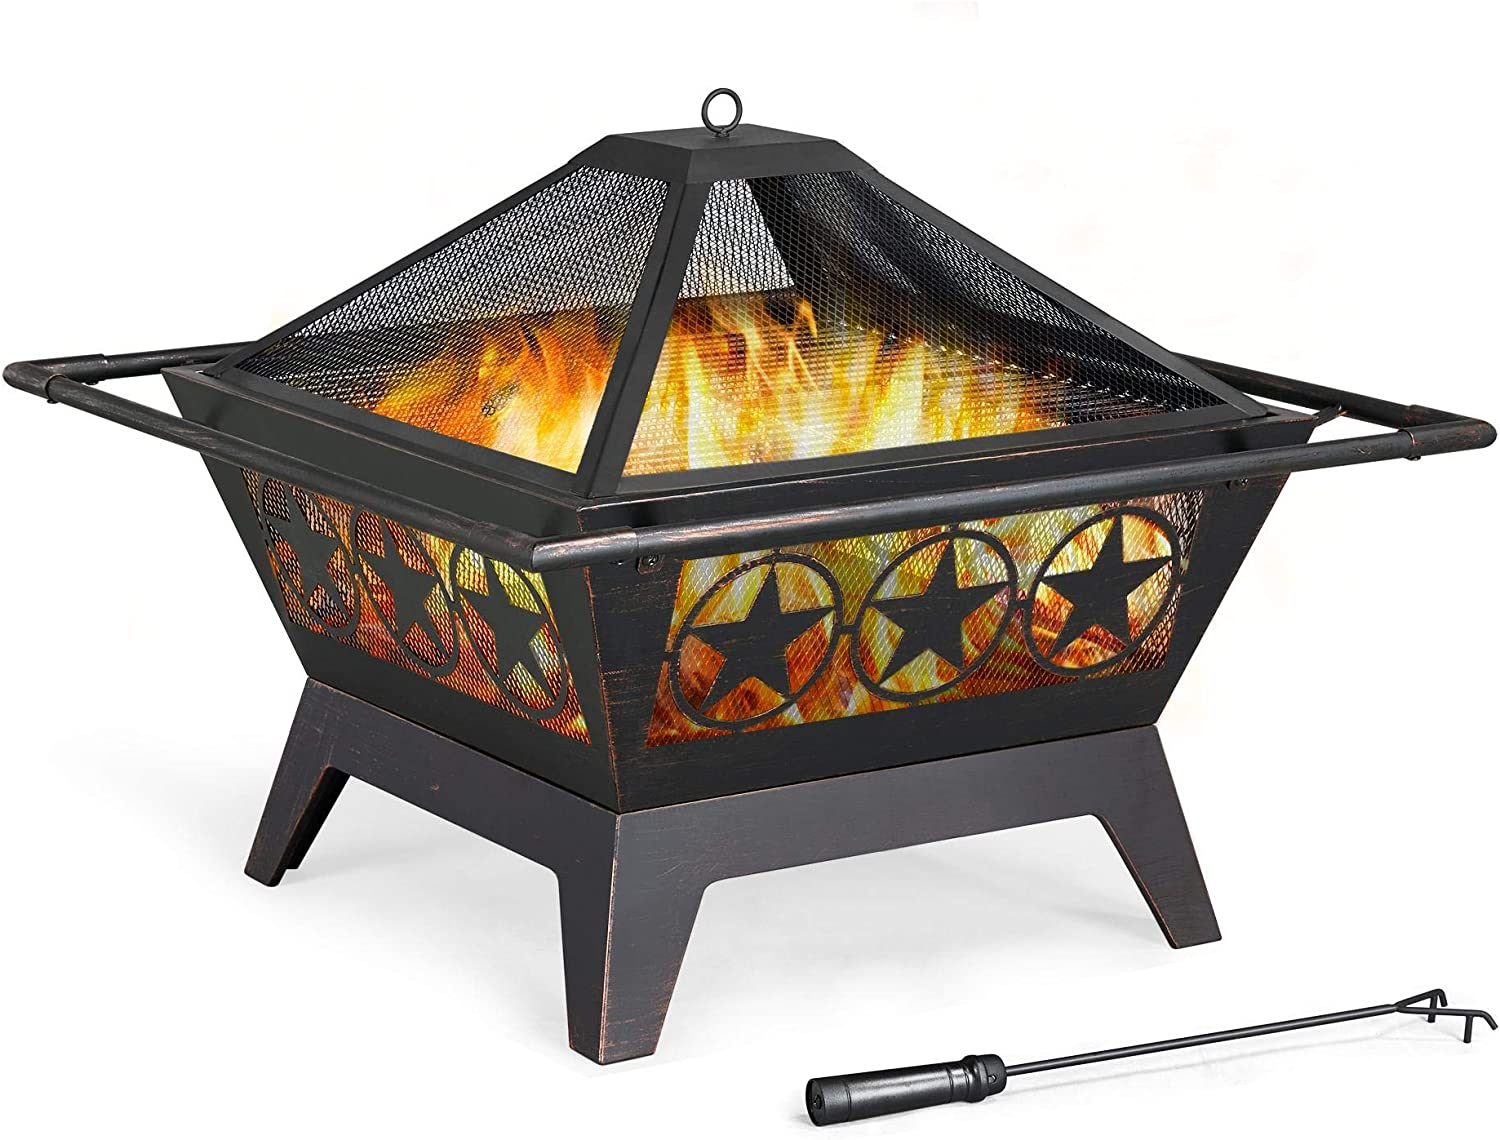 Amazon Com Yaheetech 32in Outdoor Fire Pit Metal Square Firepit Wood Burning Backyard Patio Garden Beaches Camping Picnic Bonfire Stove With Spark Screen Log Poker And Cover Garden Outdoor